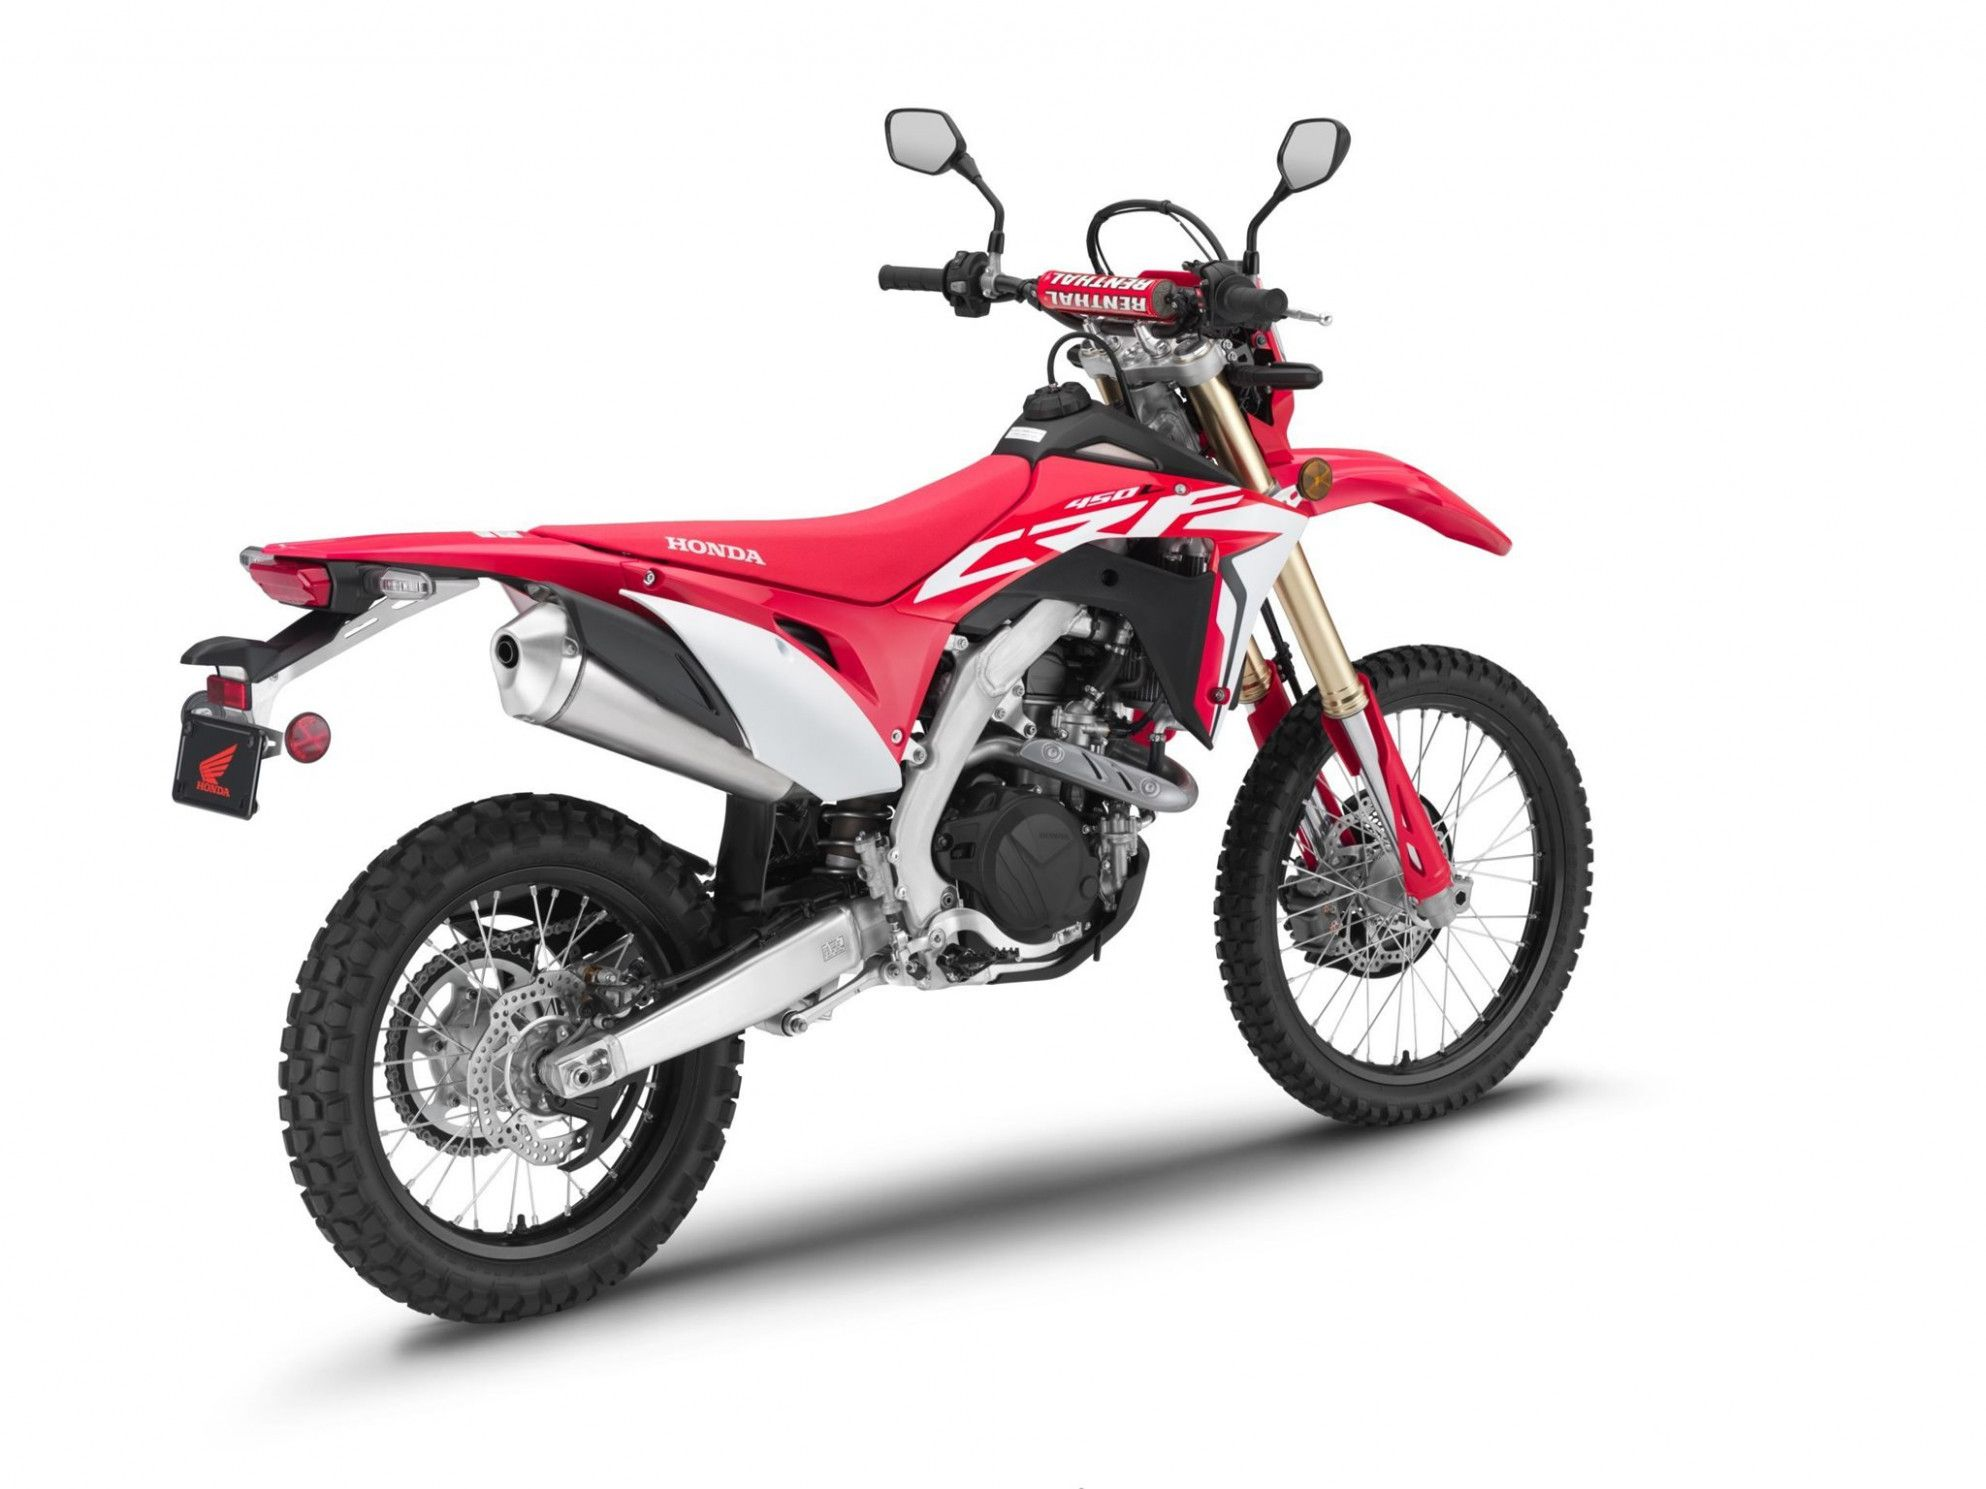 11 Wallpaper Honda Ex5 2020 In 2020 Honda Ex5 Honda Bike